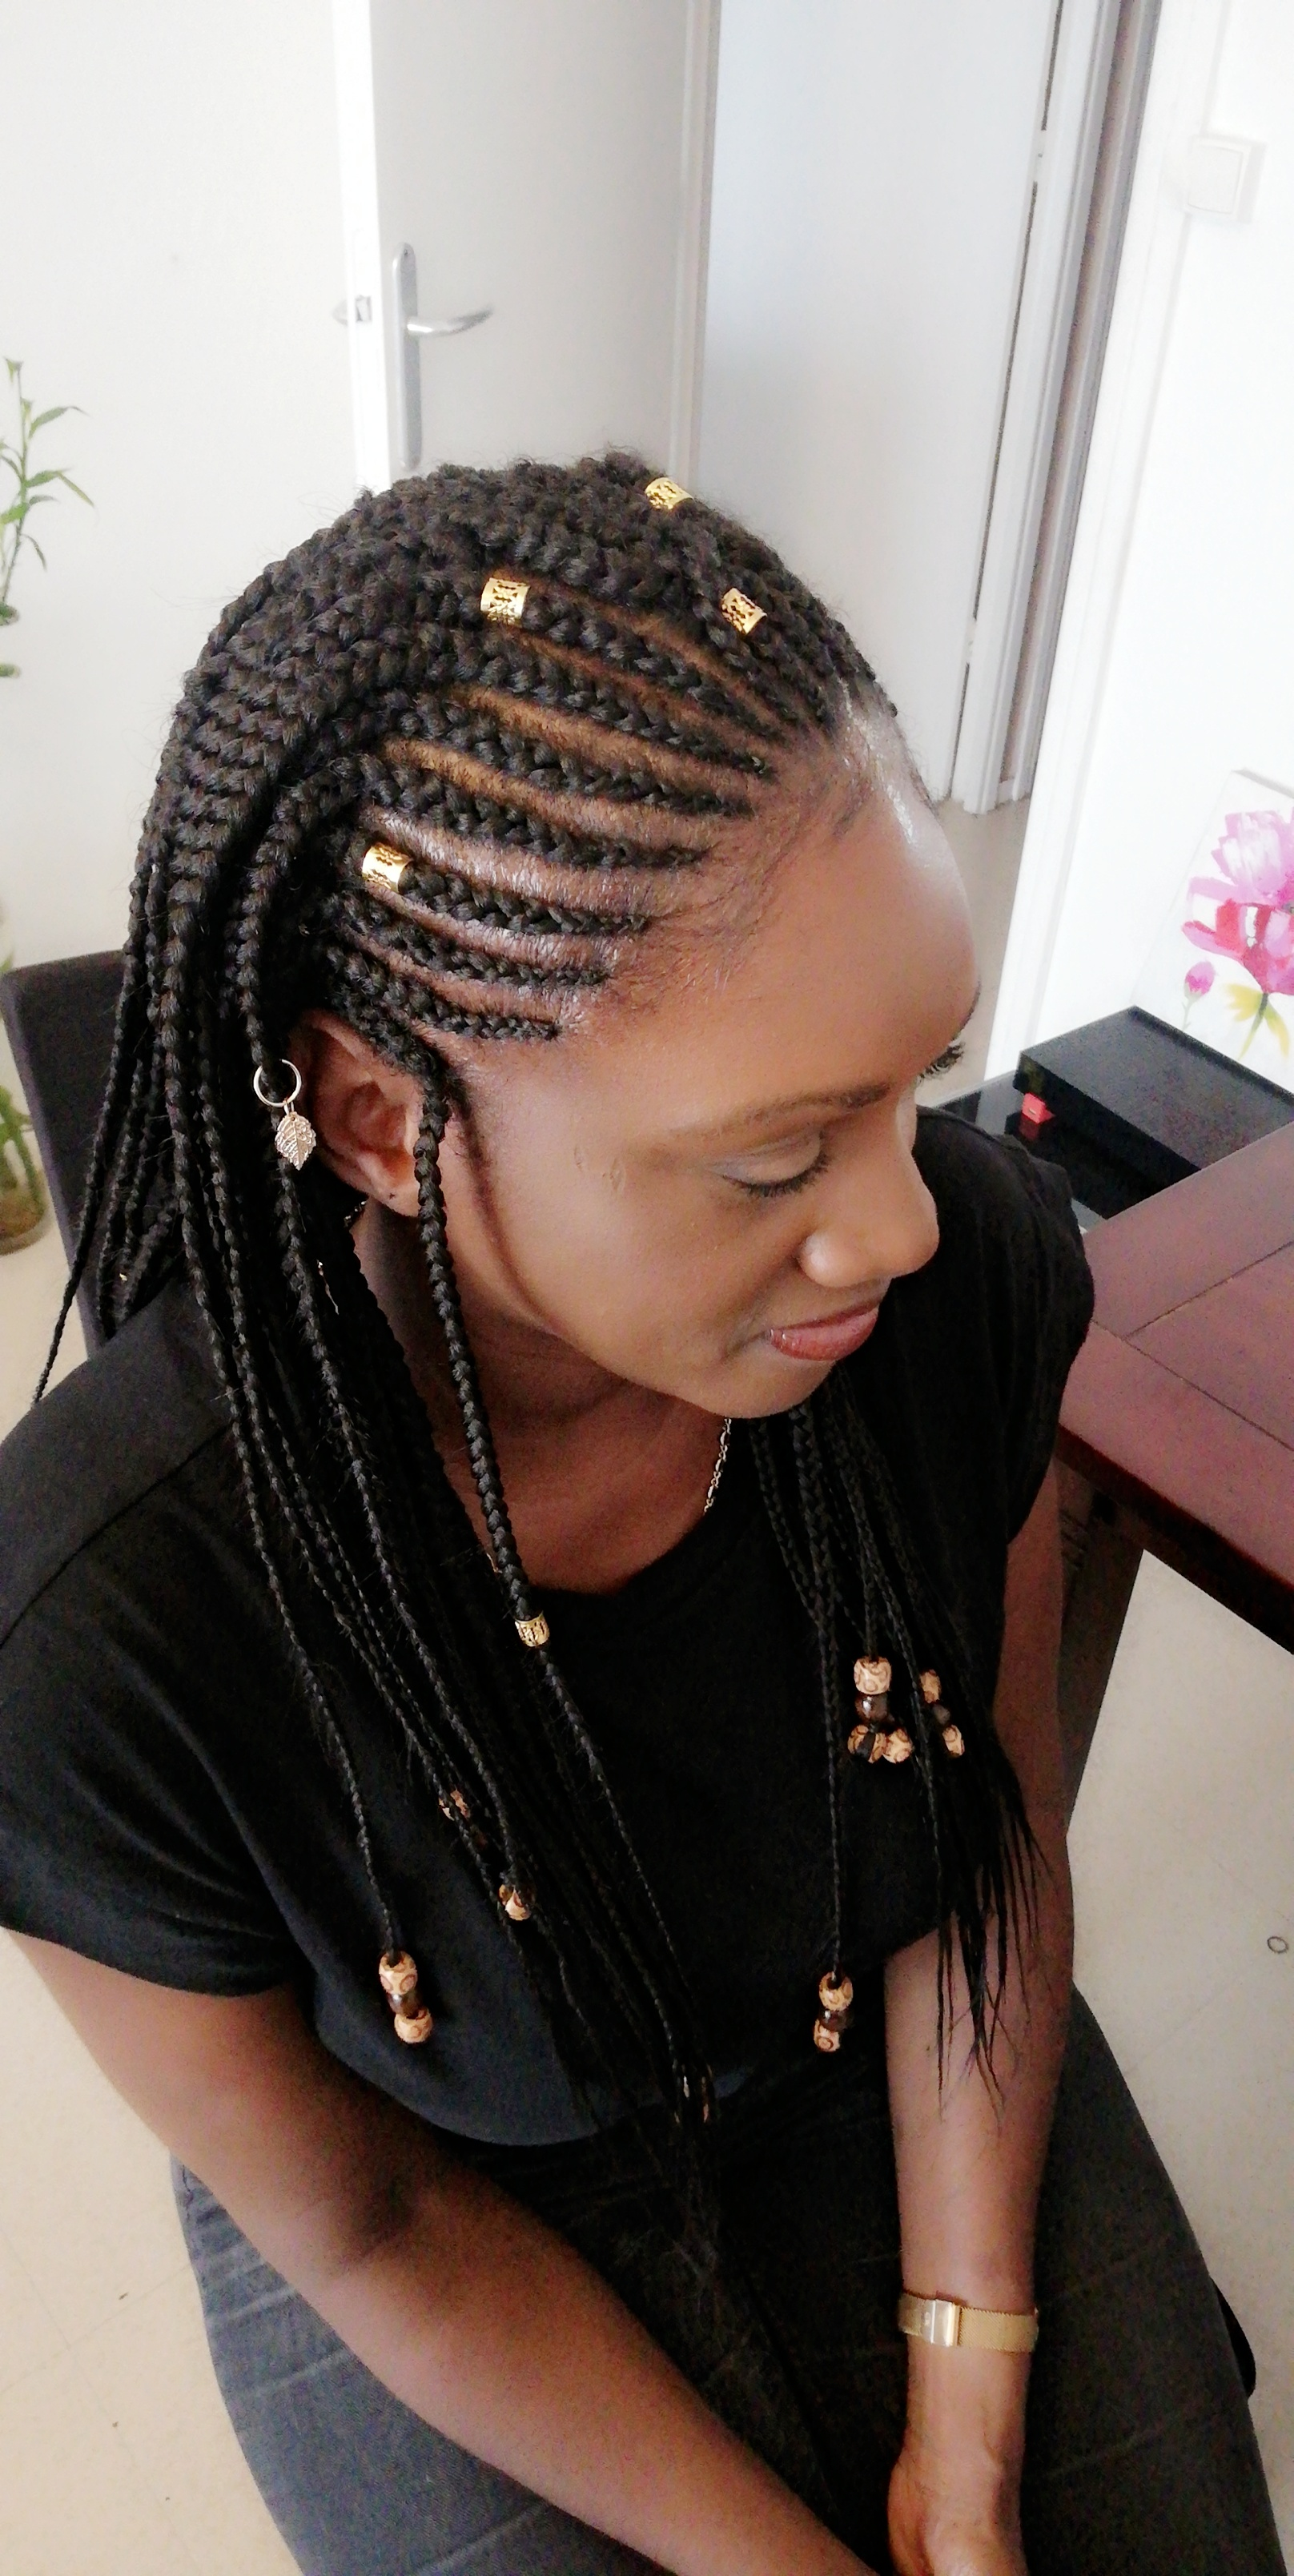 salon de coiffure afro tresse tresses box braids crochet braids vanilles tissages paris 75 77 78 91 92 93 94 95 YETVXUIJ